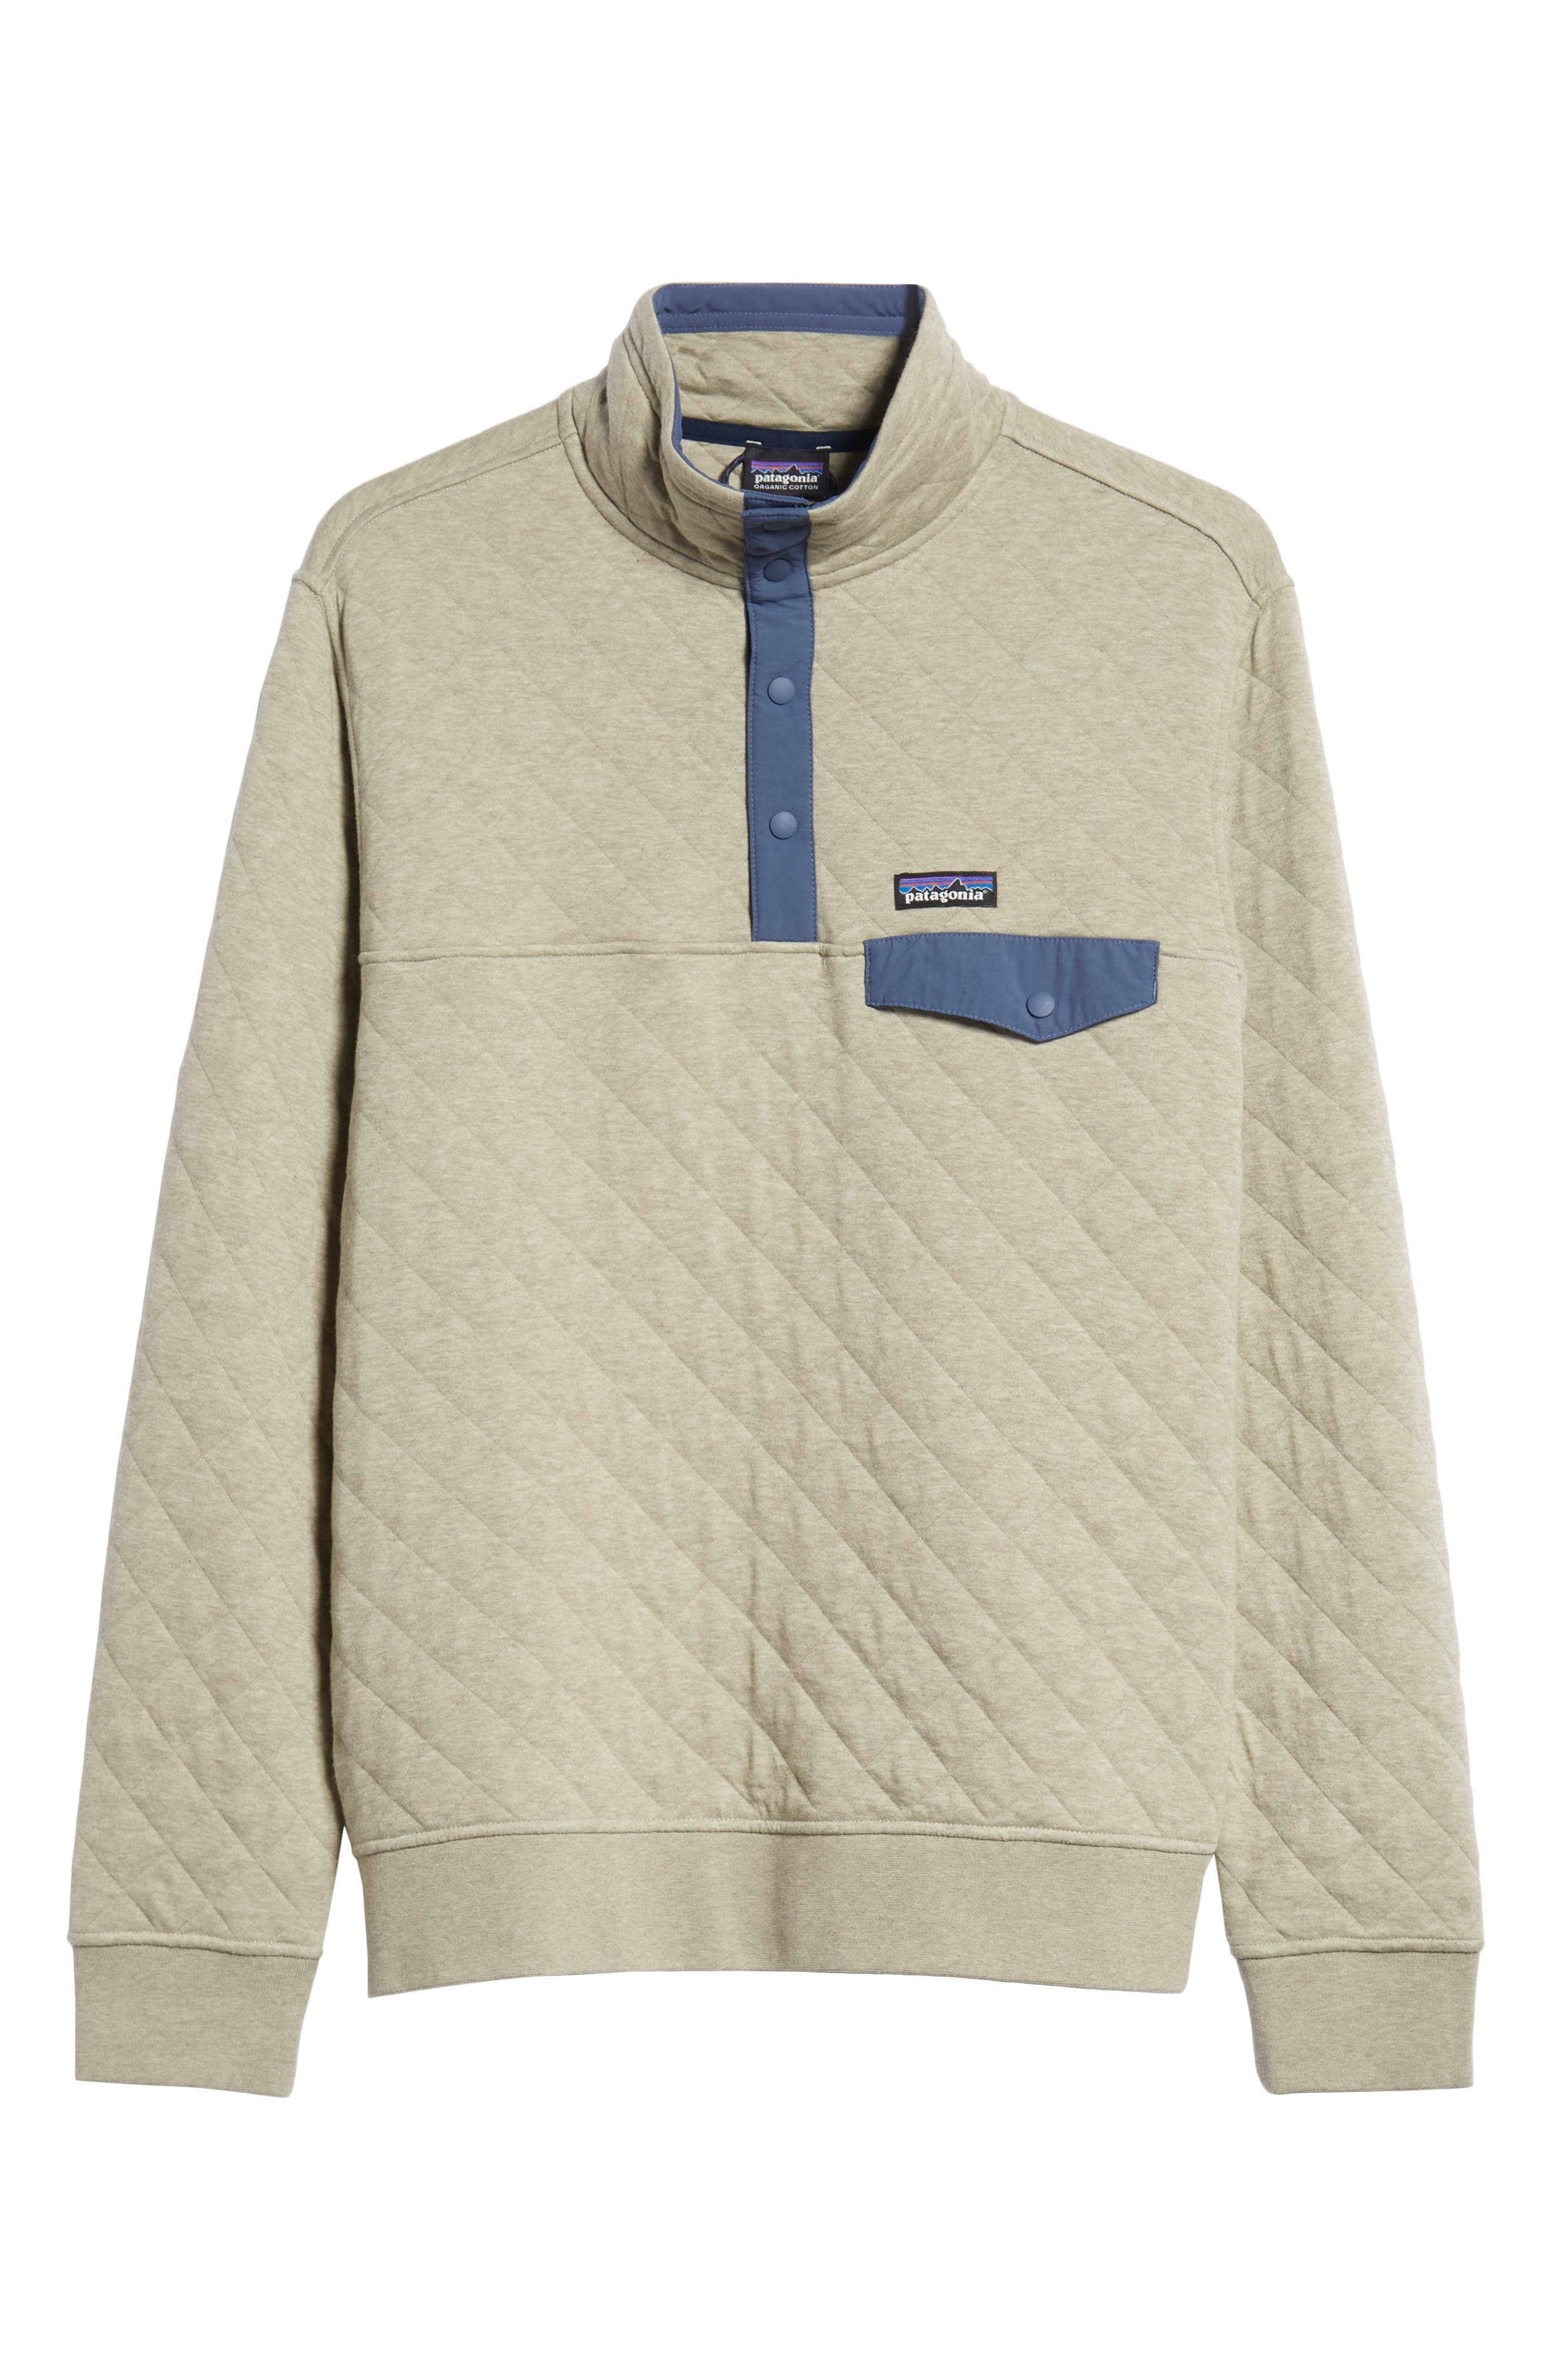 PATAGONIA, Snap-T<sup>®</sup> Quilted Fleece Pullover, Alternate thumbnail 7, color, SHALE